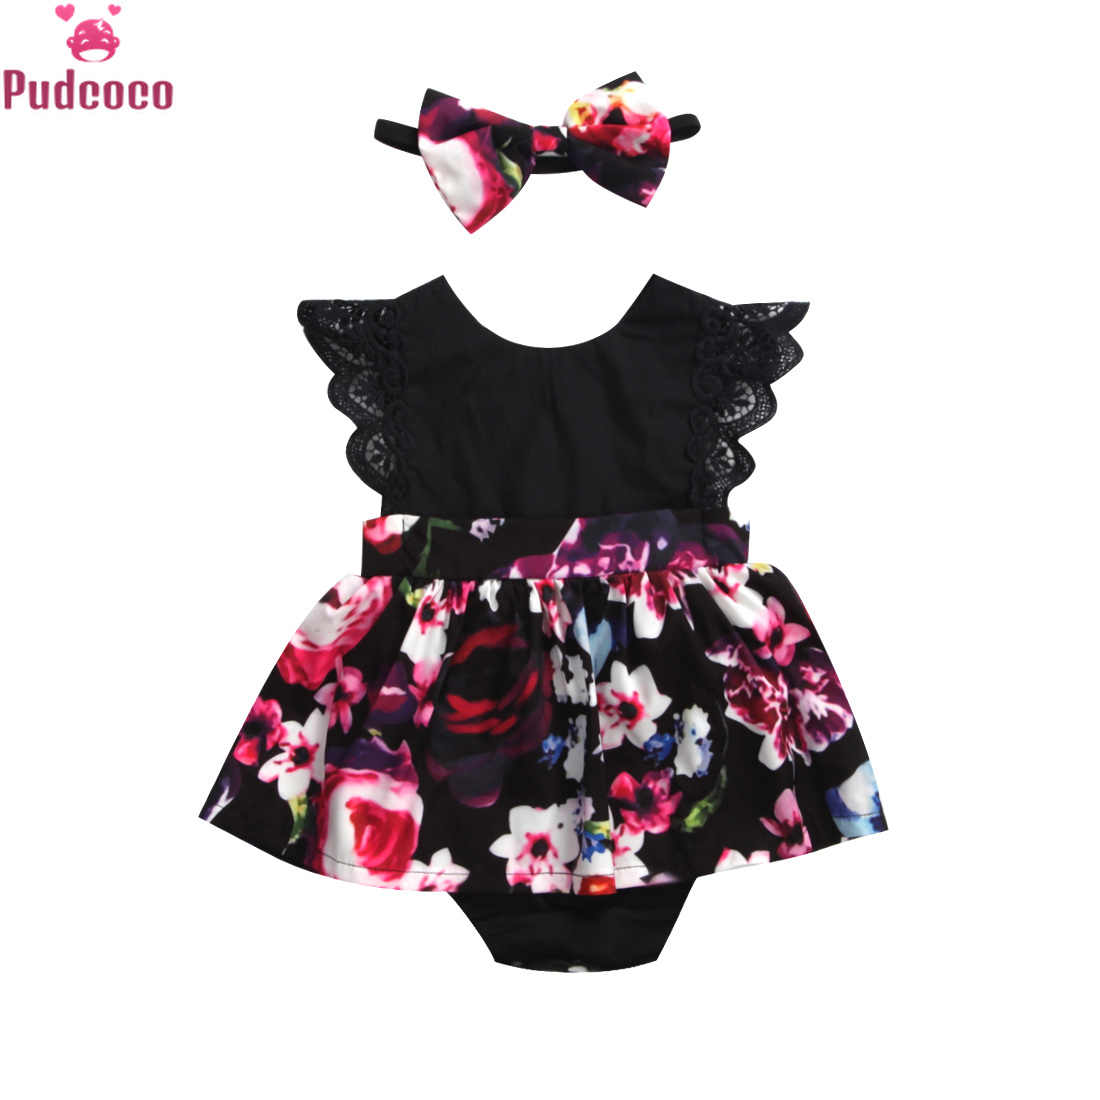 Floral Summer Party Princess Dress+Headband Outfits 3Pcs//Set Newborn Infant Toddler Baby Girls Romper Bodysuit